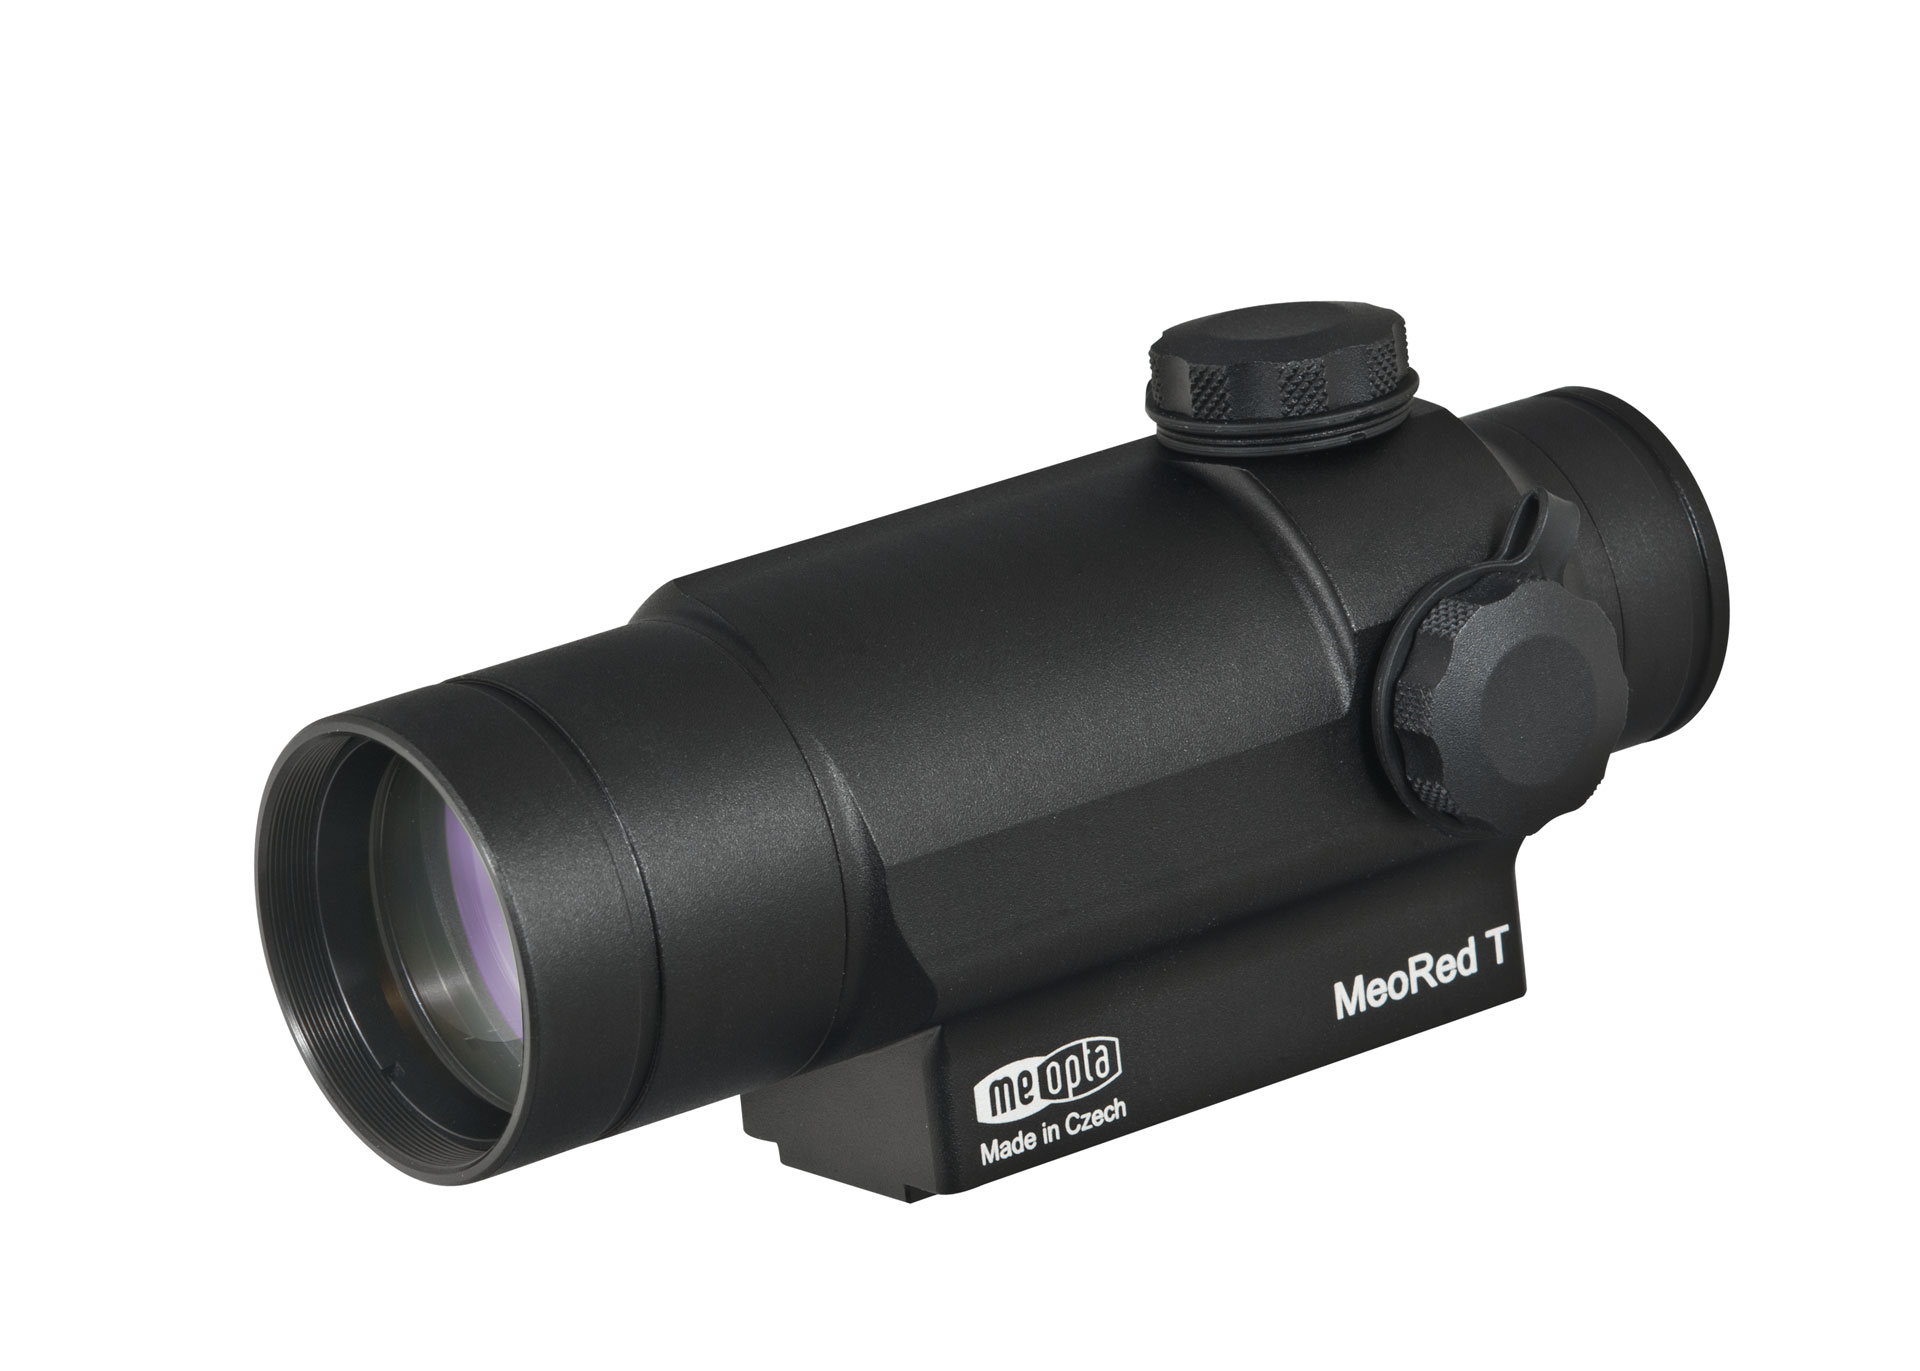 Meopta Introduces the MeoRed T Reflex Sight